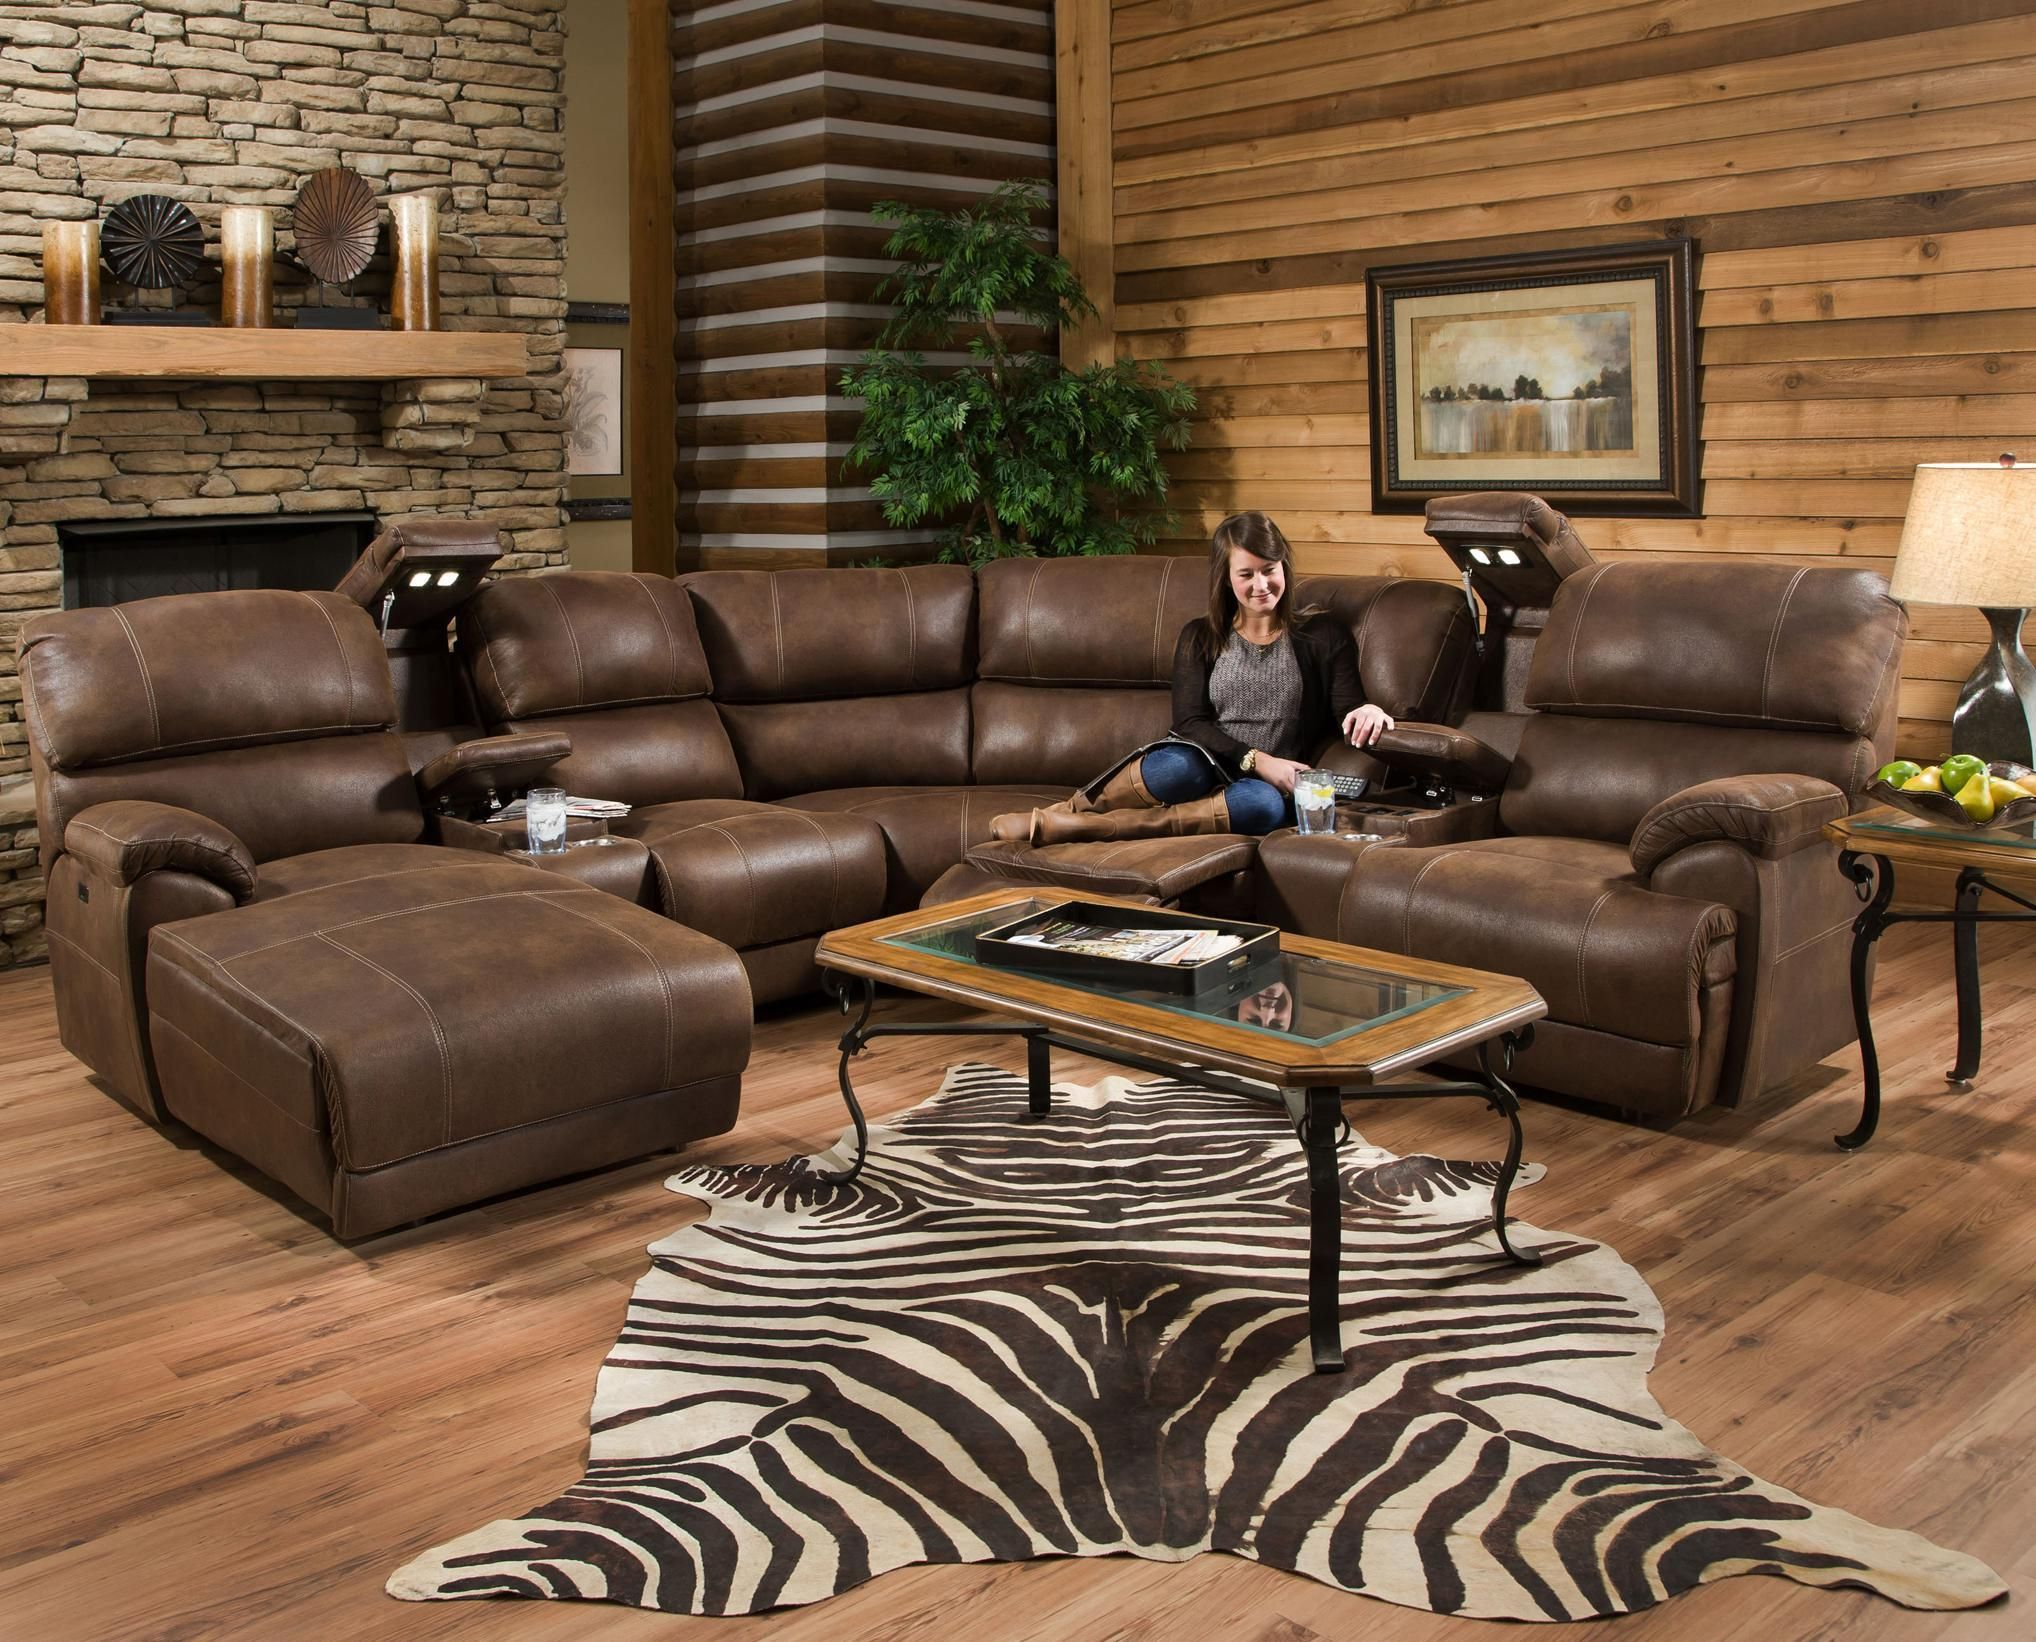 572 reclining sectional sofa with chaise by franklin purple sofas uk empire massage